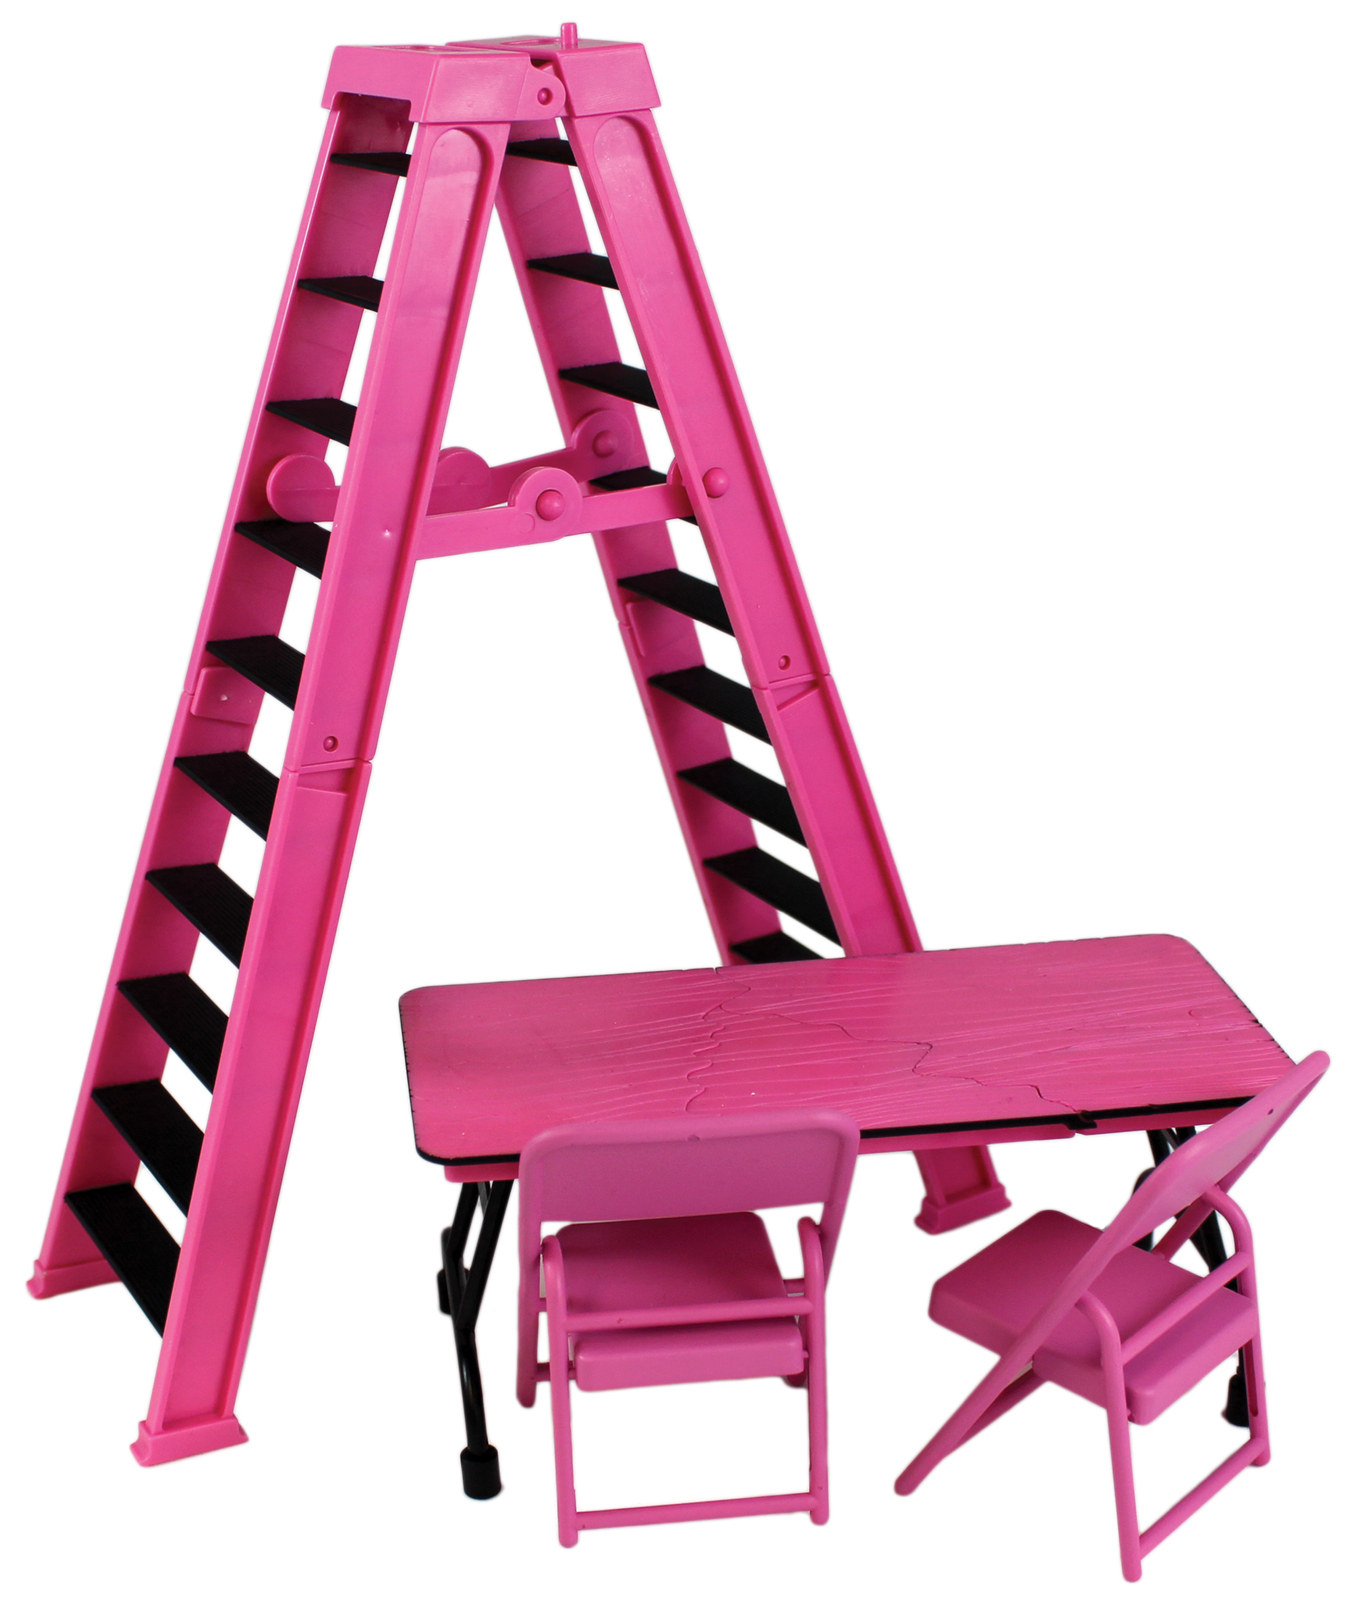 kmart table and chairs review high back chair wwe ultimate ladder & playset (pink) - ringside exclusive toy wrestling action figure ...